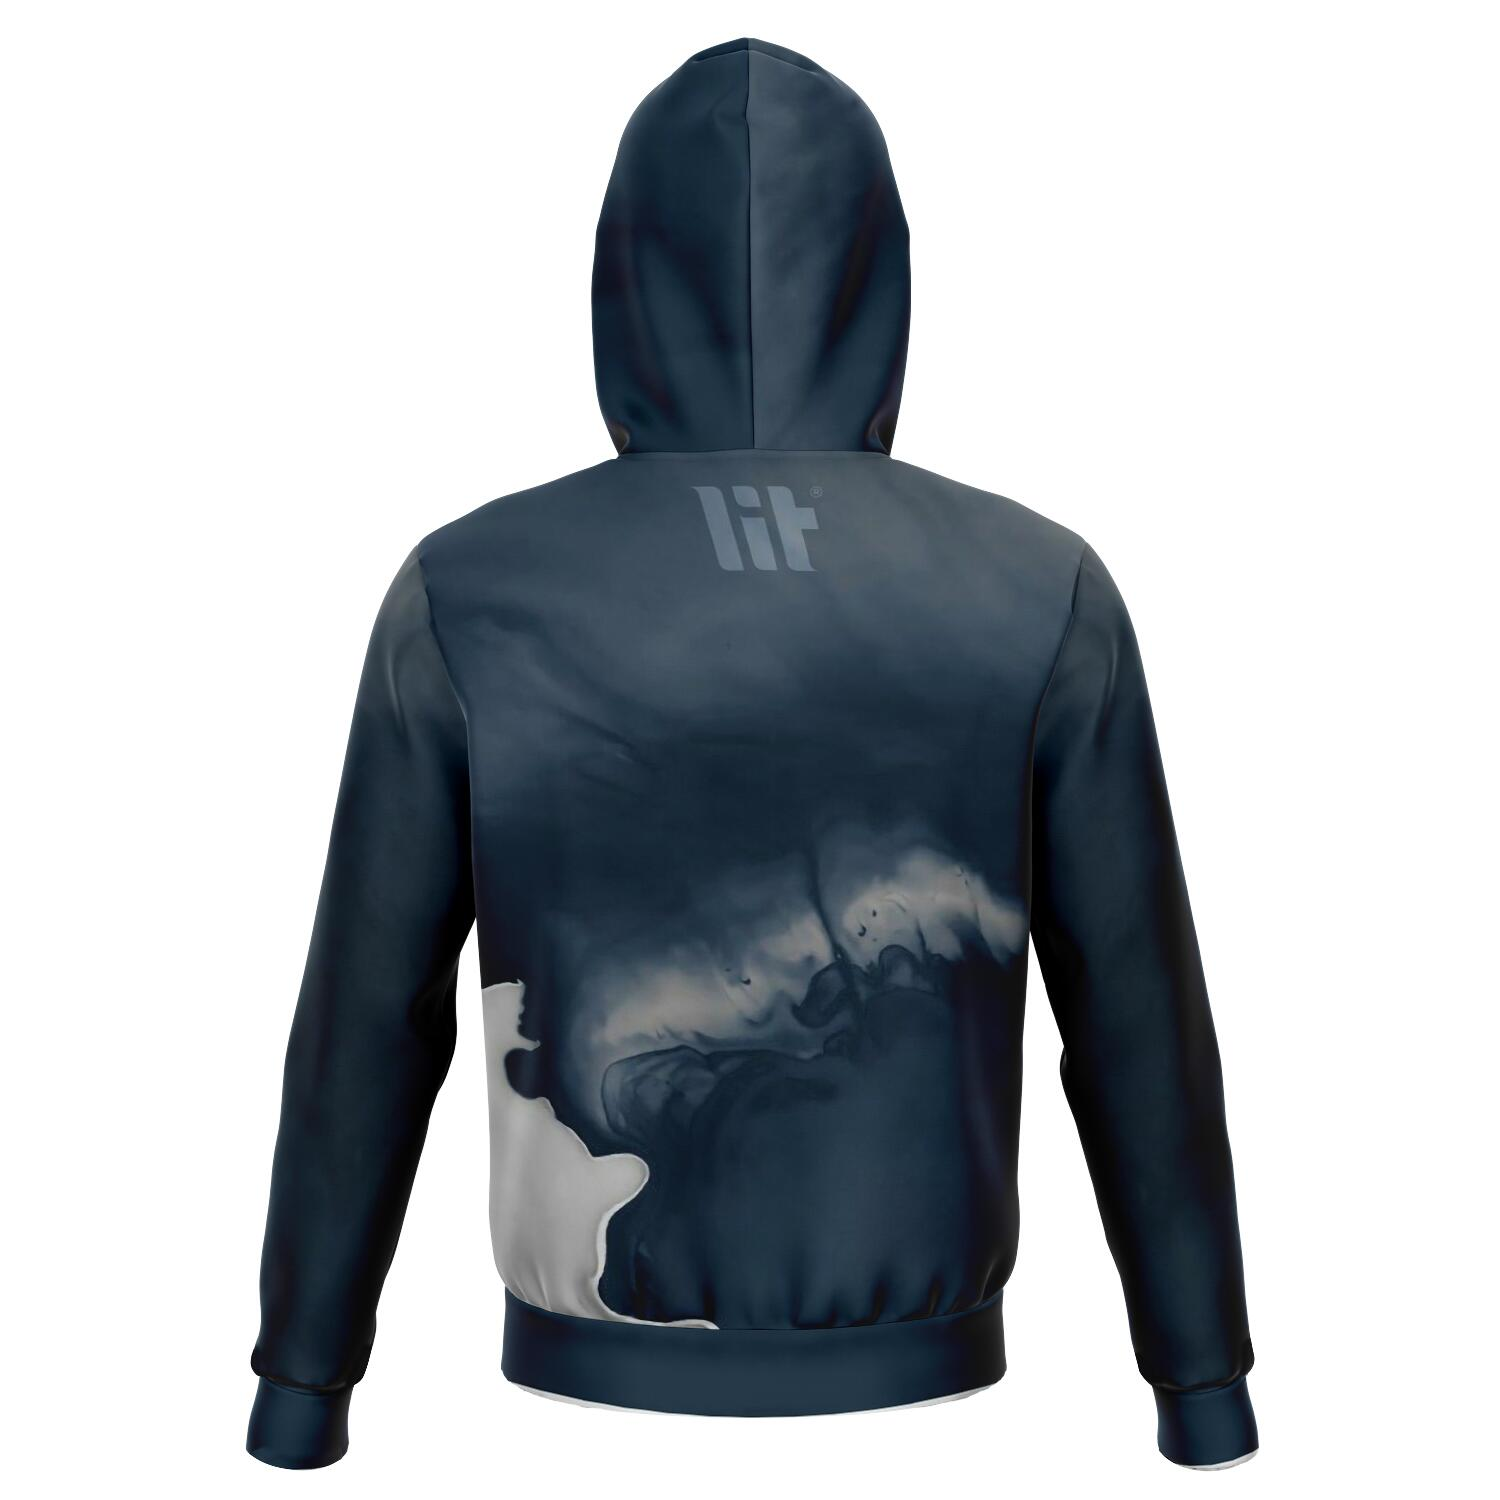 Soft Universe Pullover Hoodie